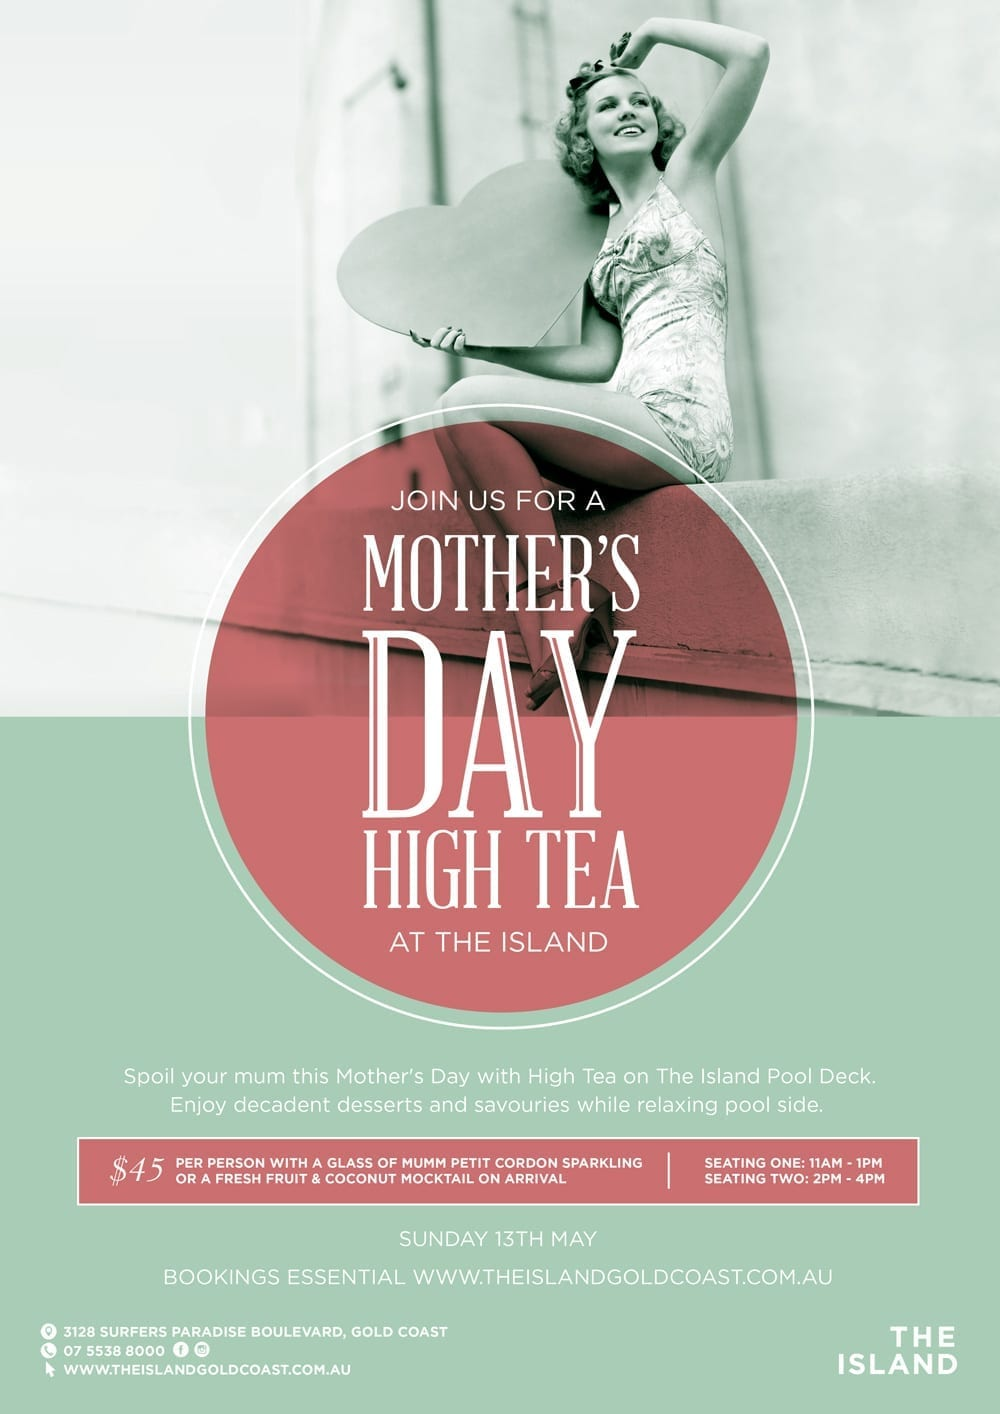 The Island Gold Coast Mother's Day High Tea [object object] - The Island Mothers Day High Tea 13th May Poster web - Mother's Day High Tea